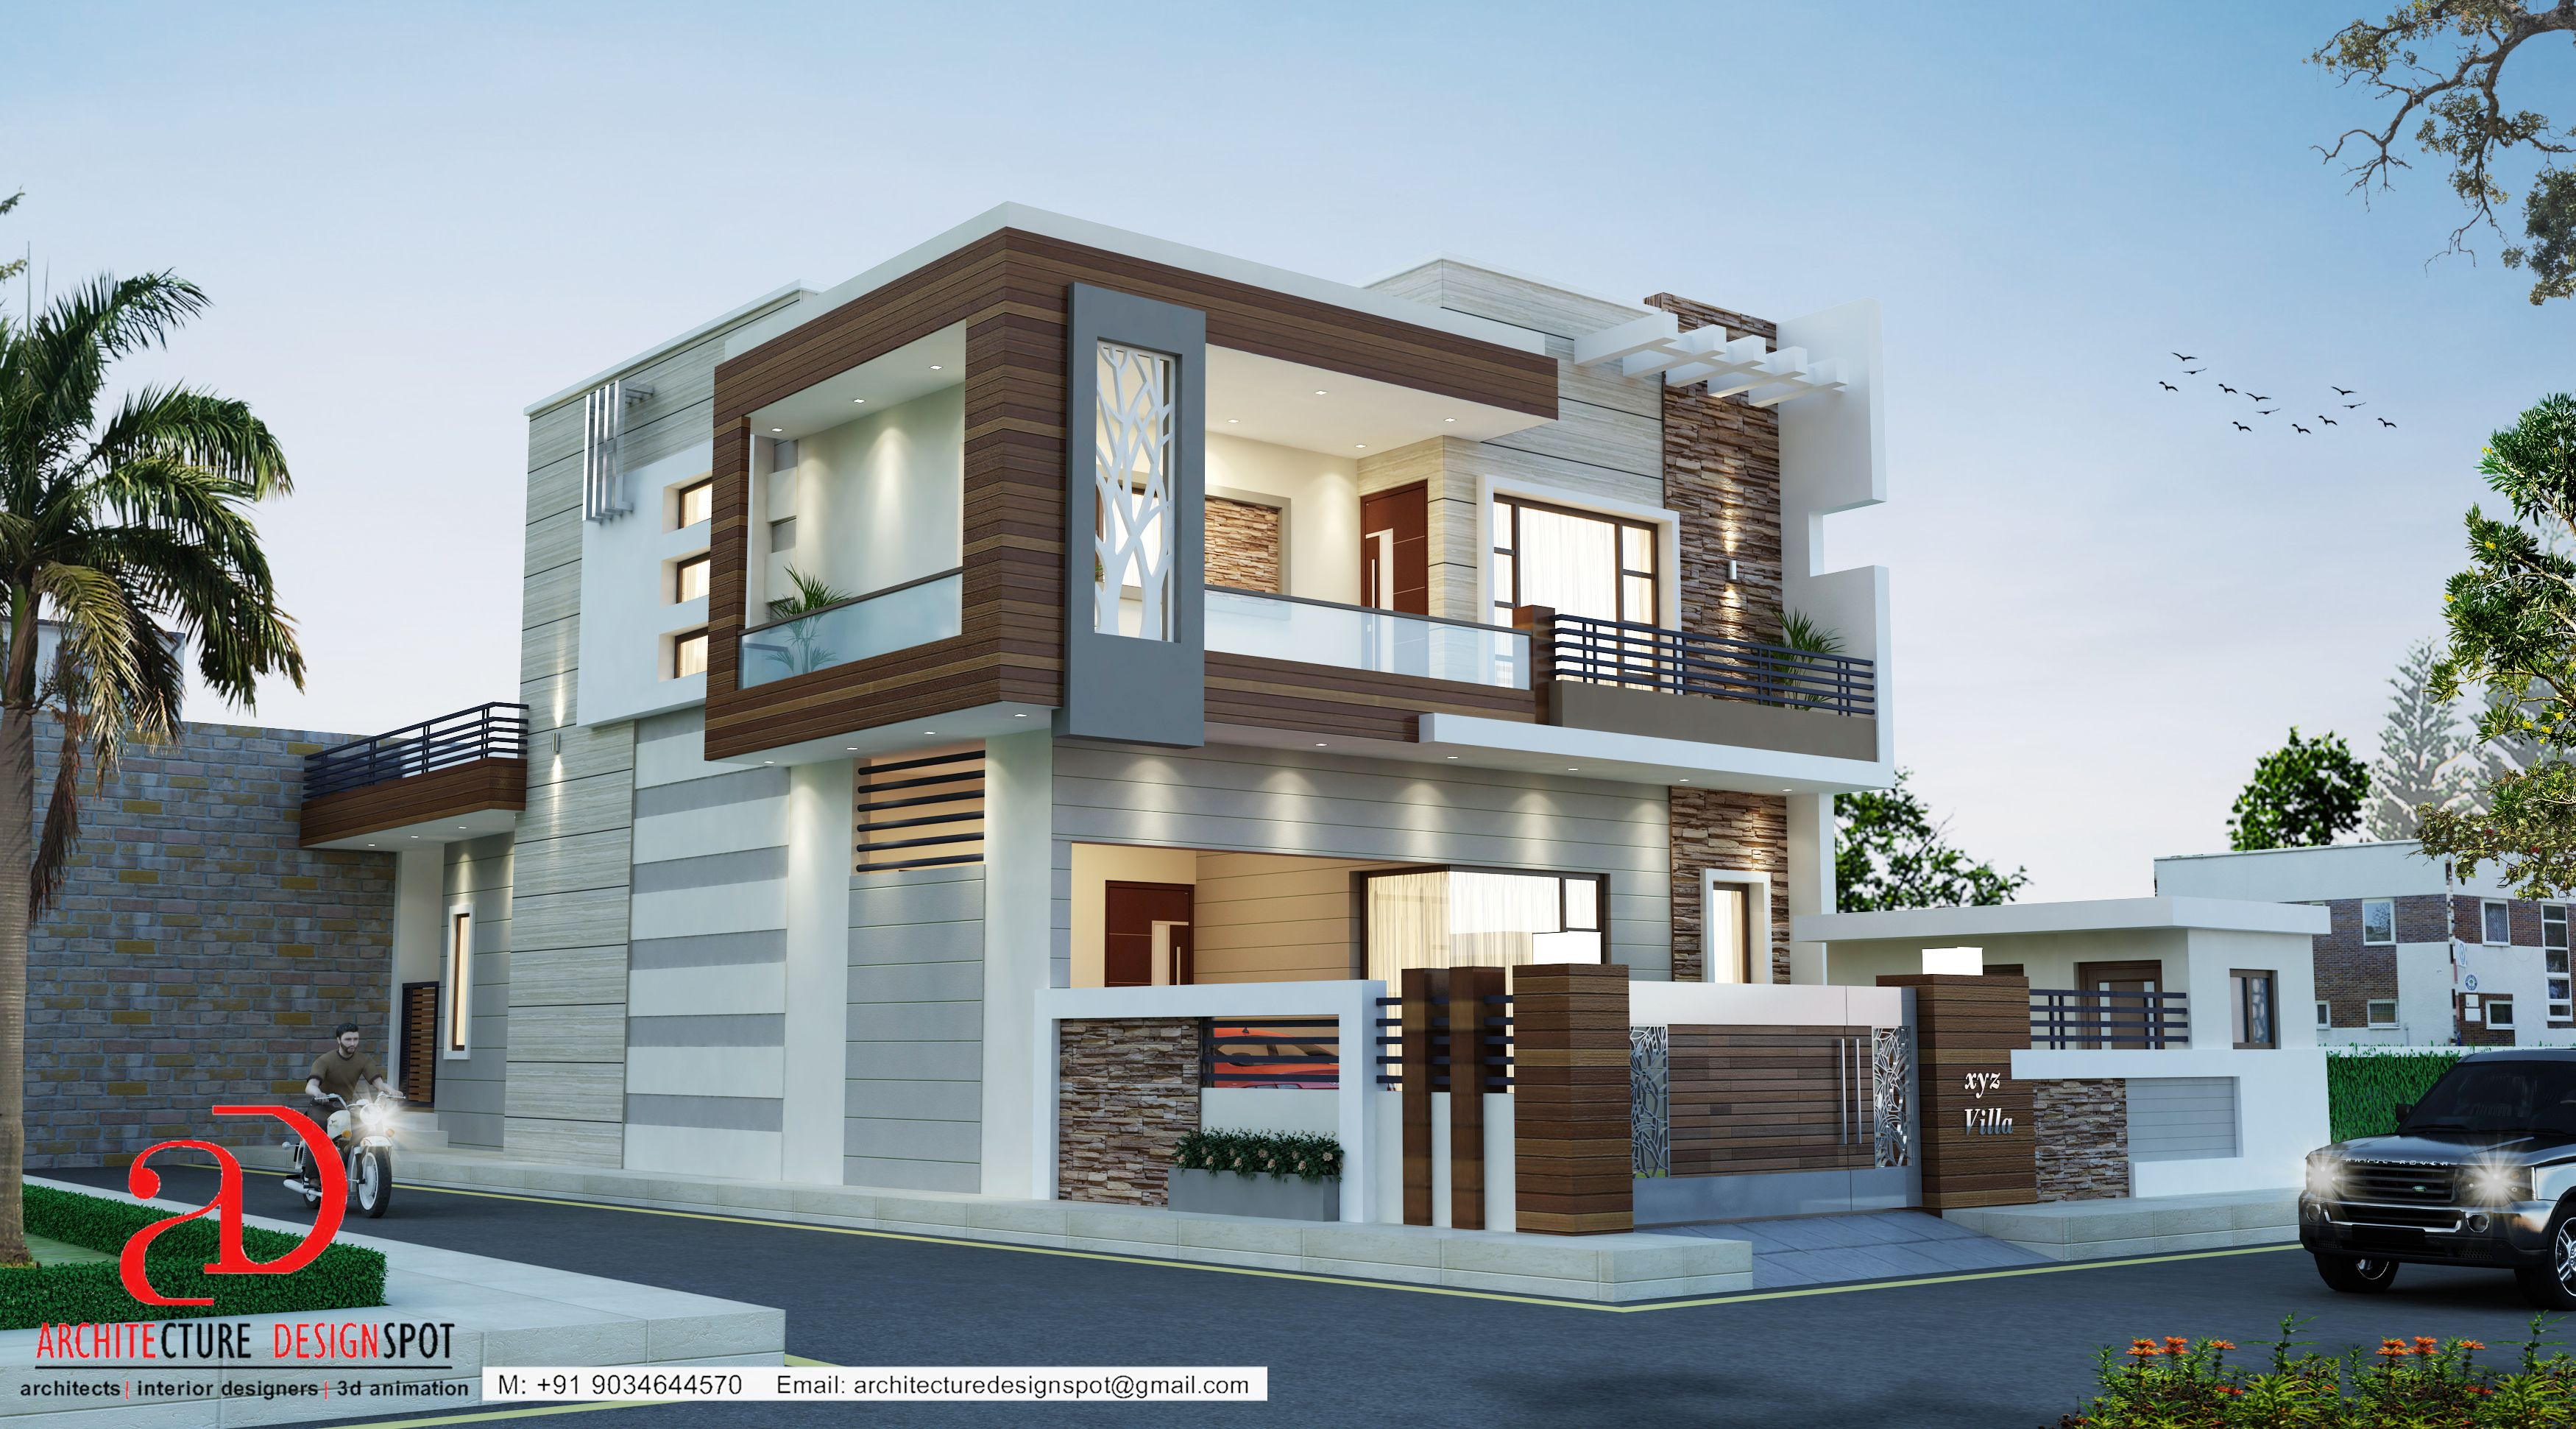 3d View Of A Modern House Architecture Design Spot House